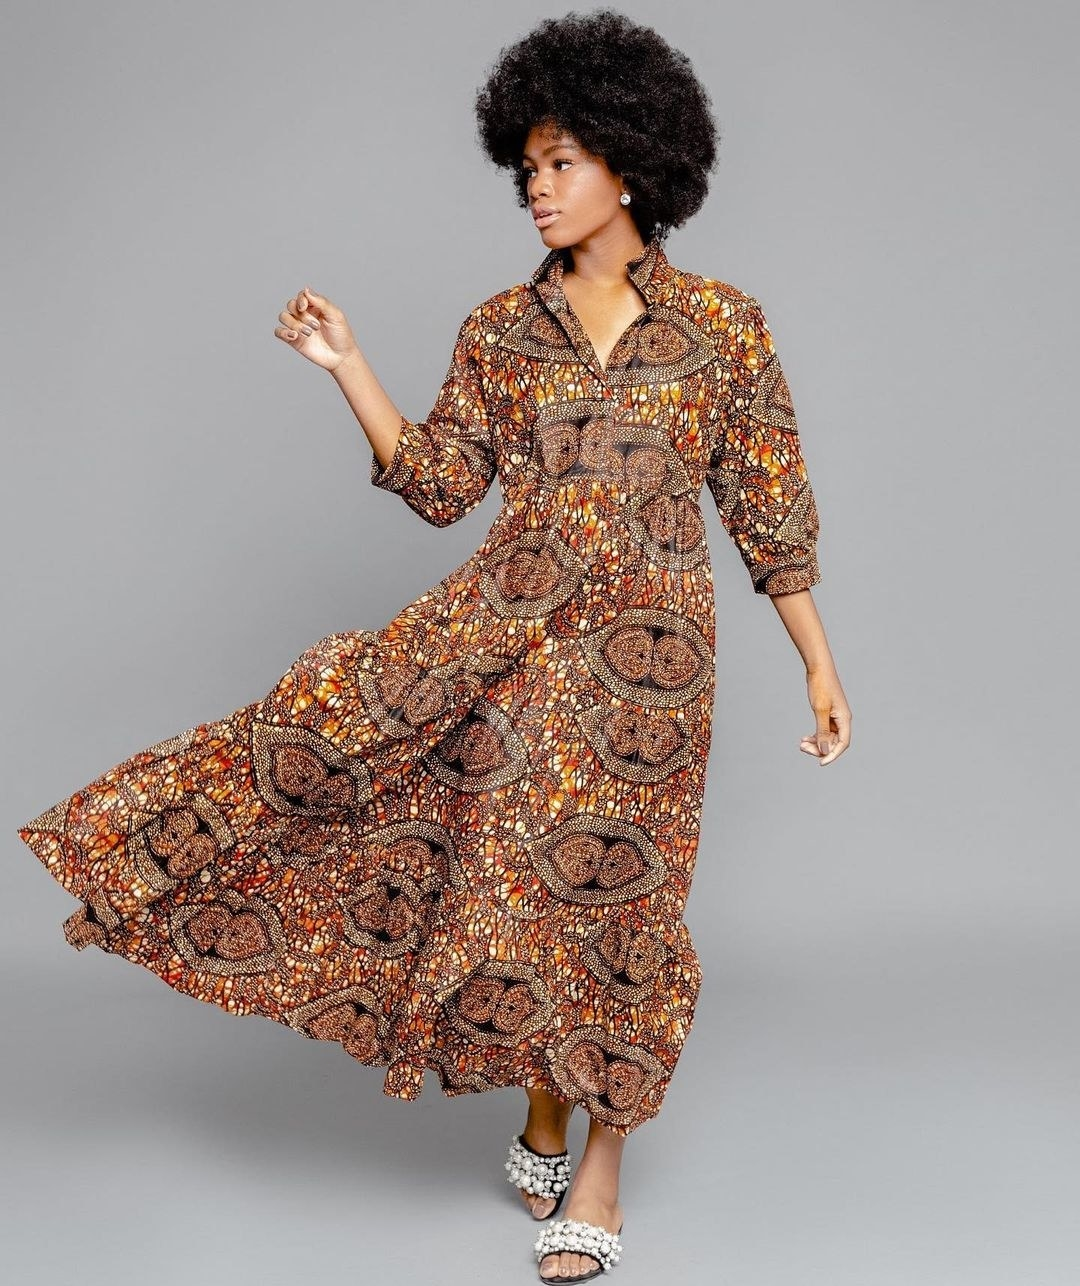 model wearing a vibrant paisley patterned dress with a v-neck and collar